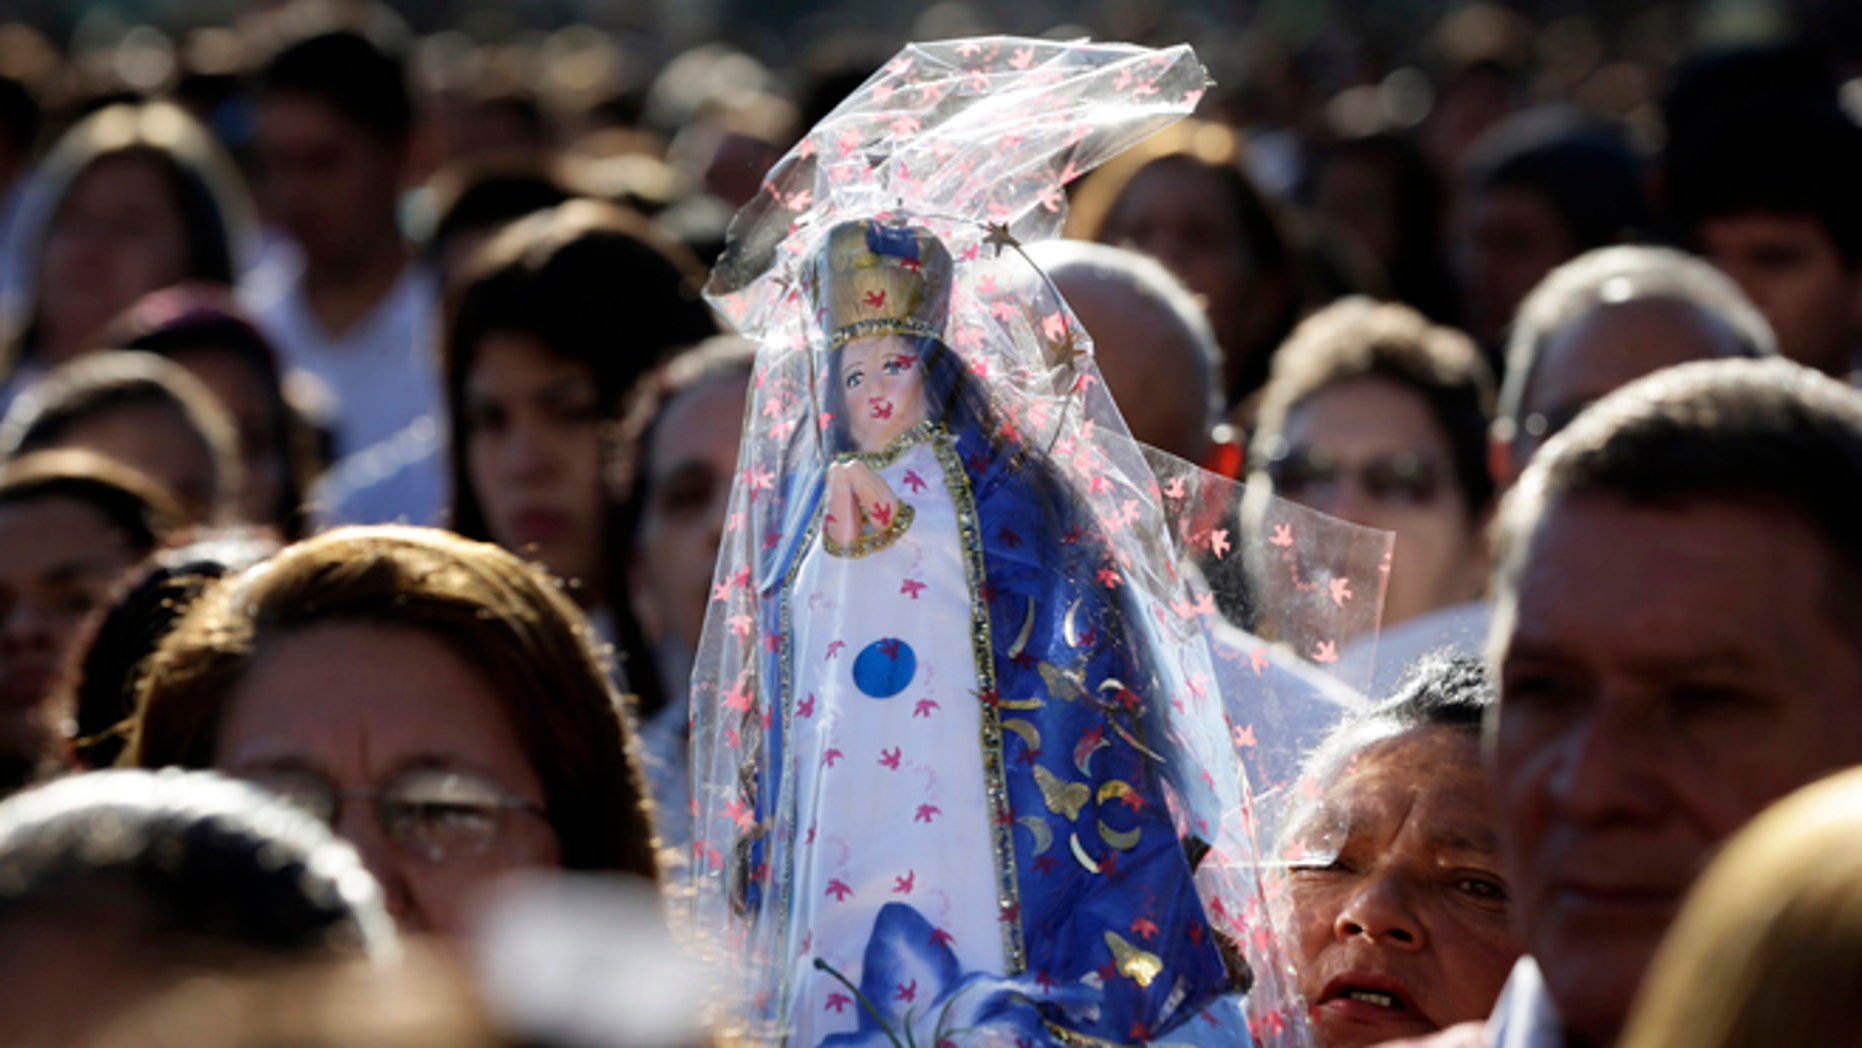 FILE - In this June 7, 2015, file photo, a woman carries a Caacupe virgin replica during Corpus Christi mass in Caacupe city, Paraguay. Hundreds of thousands turn out every December to worship before the little wooden statue of the Virgin Mary, who wears a crown over her long hair, with a billowing white robe and a blue cloak. (AP Photo/Jorge Saenz, File)